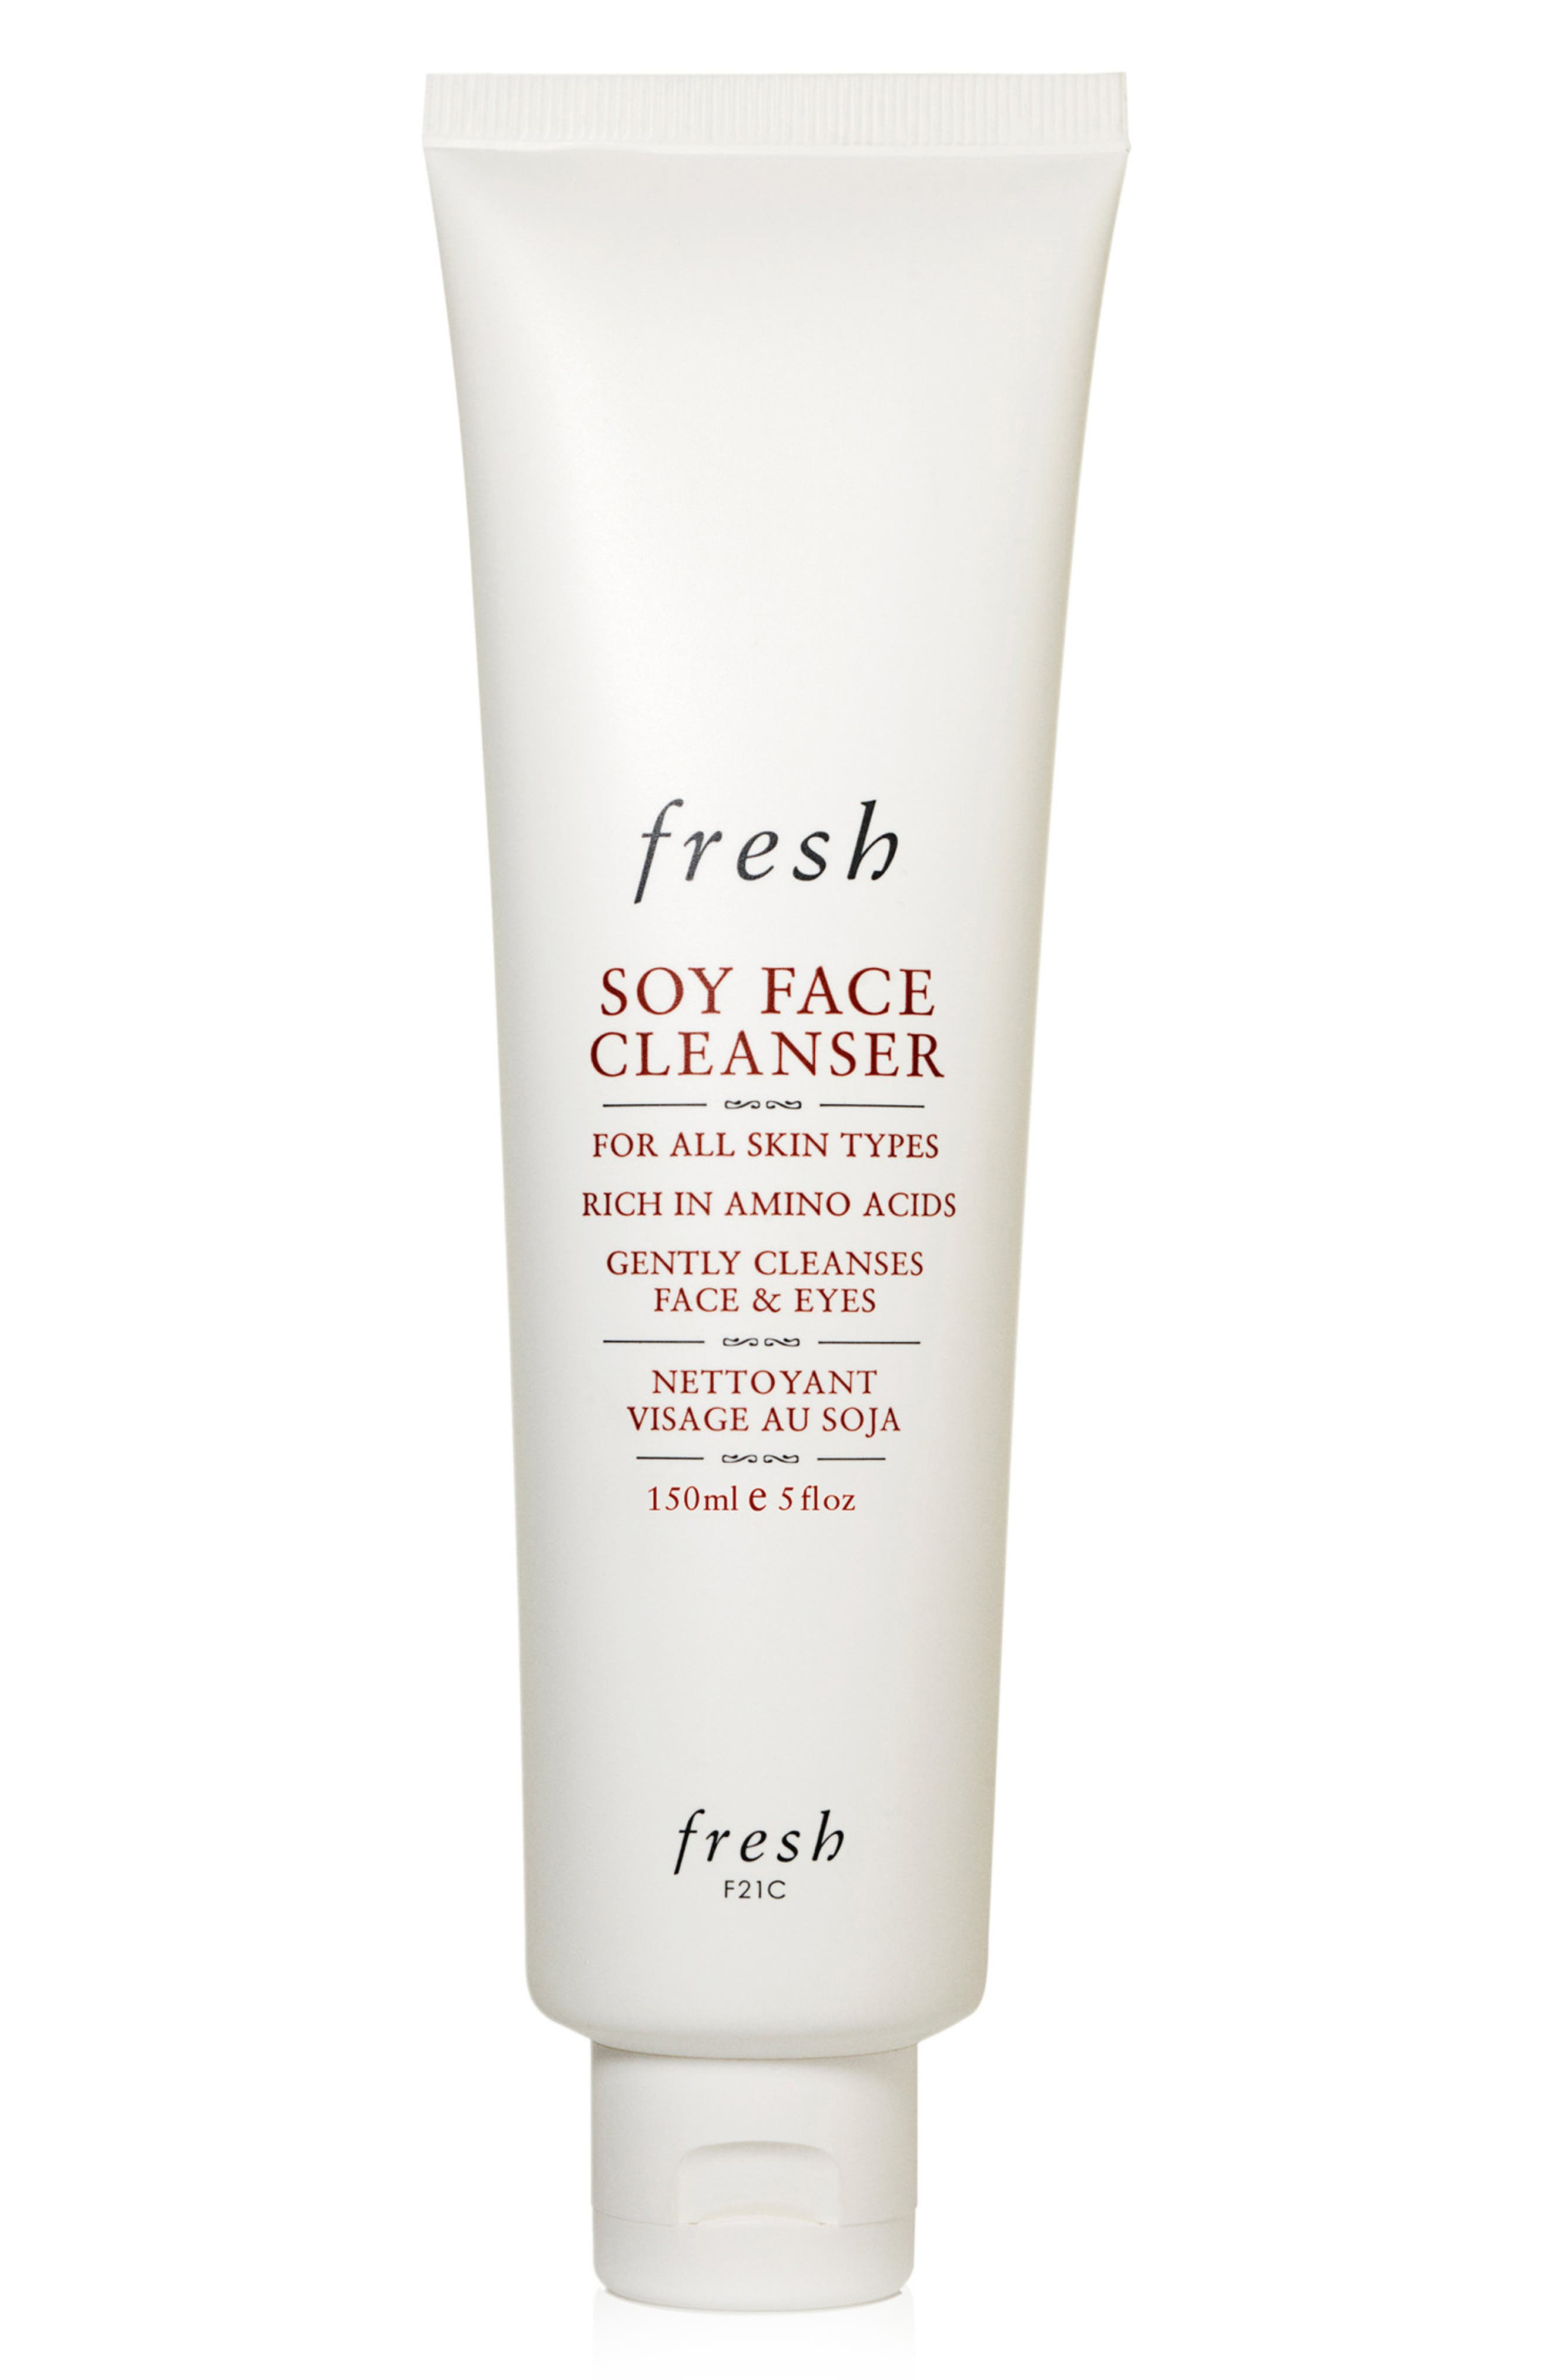 Fresh Soy Face Cleanser Makeup Removing Face Wash